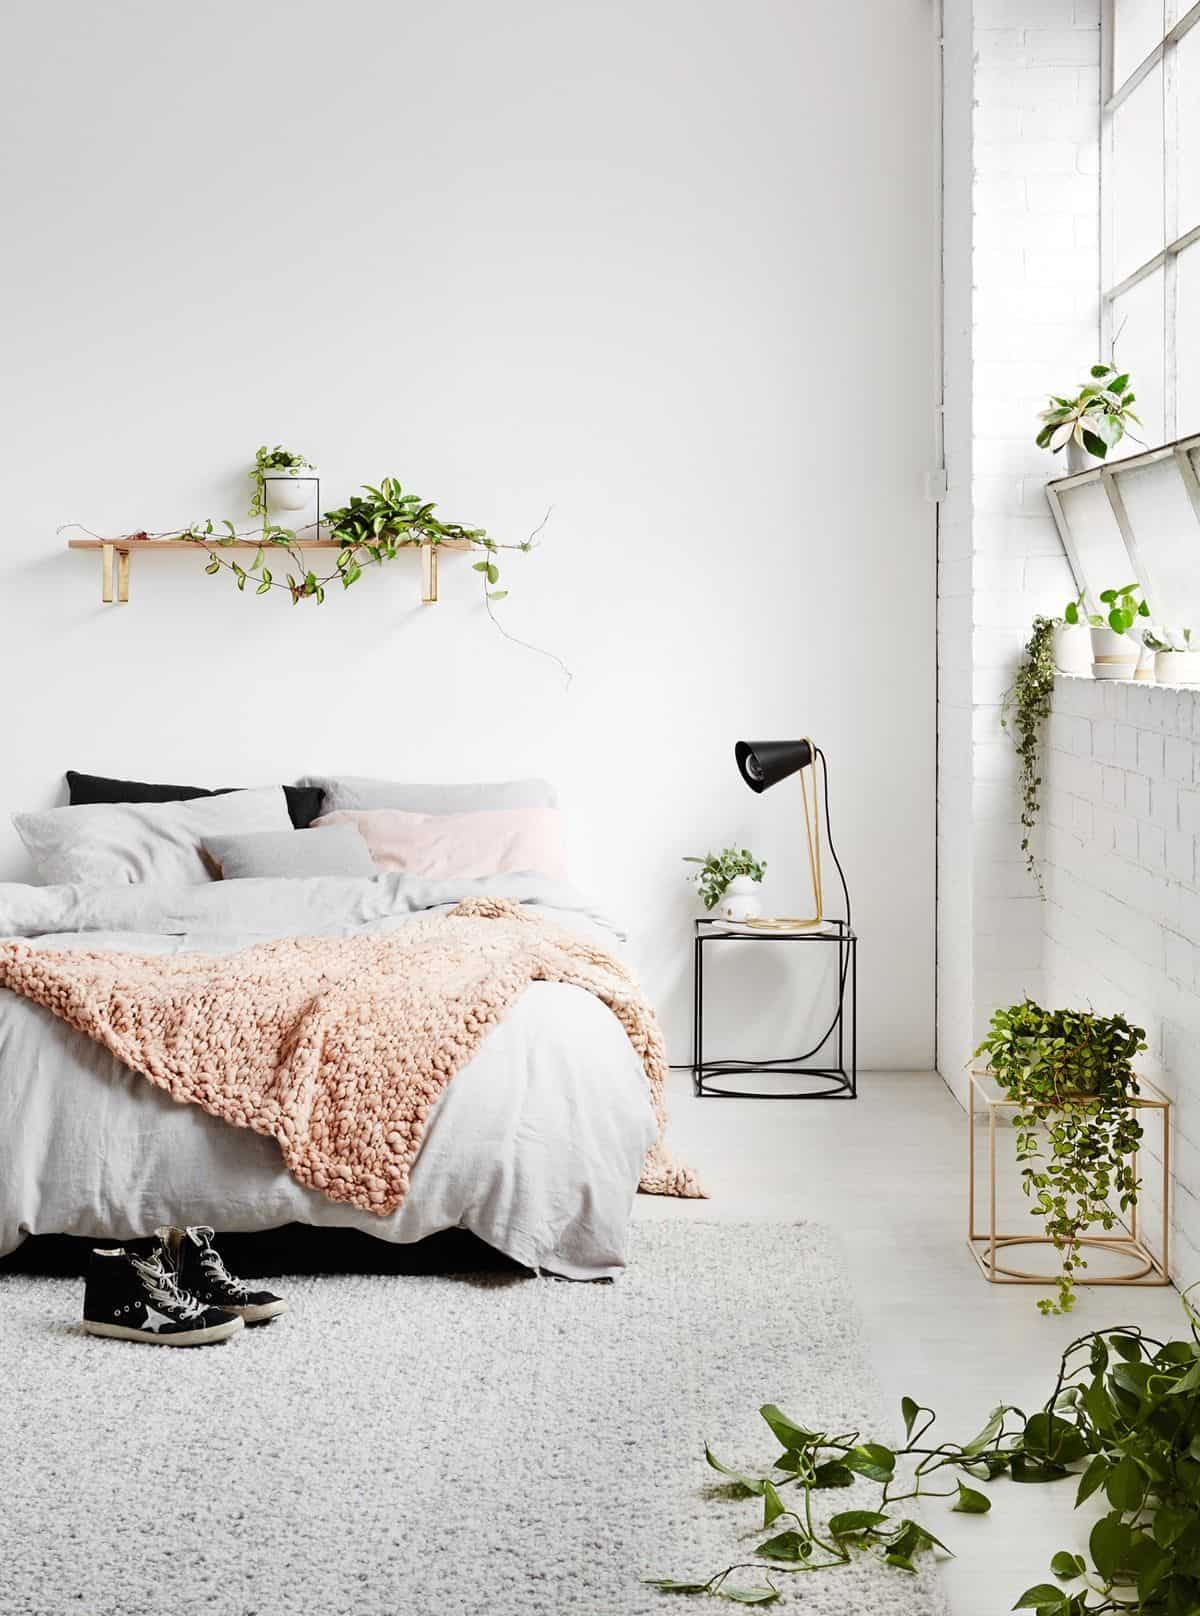 Add a few fresh items to add the natural elements to bring a summery feel directly in. Keep the palette clean with little no color for the best outcome.